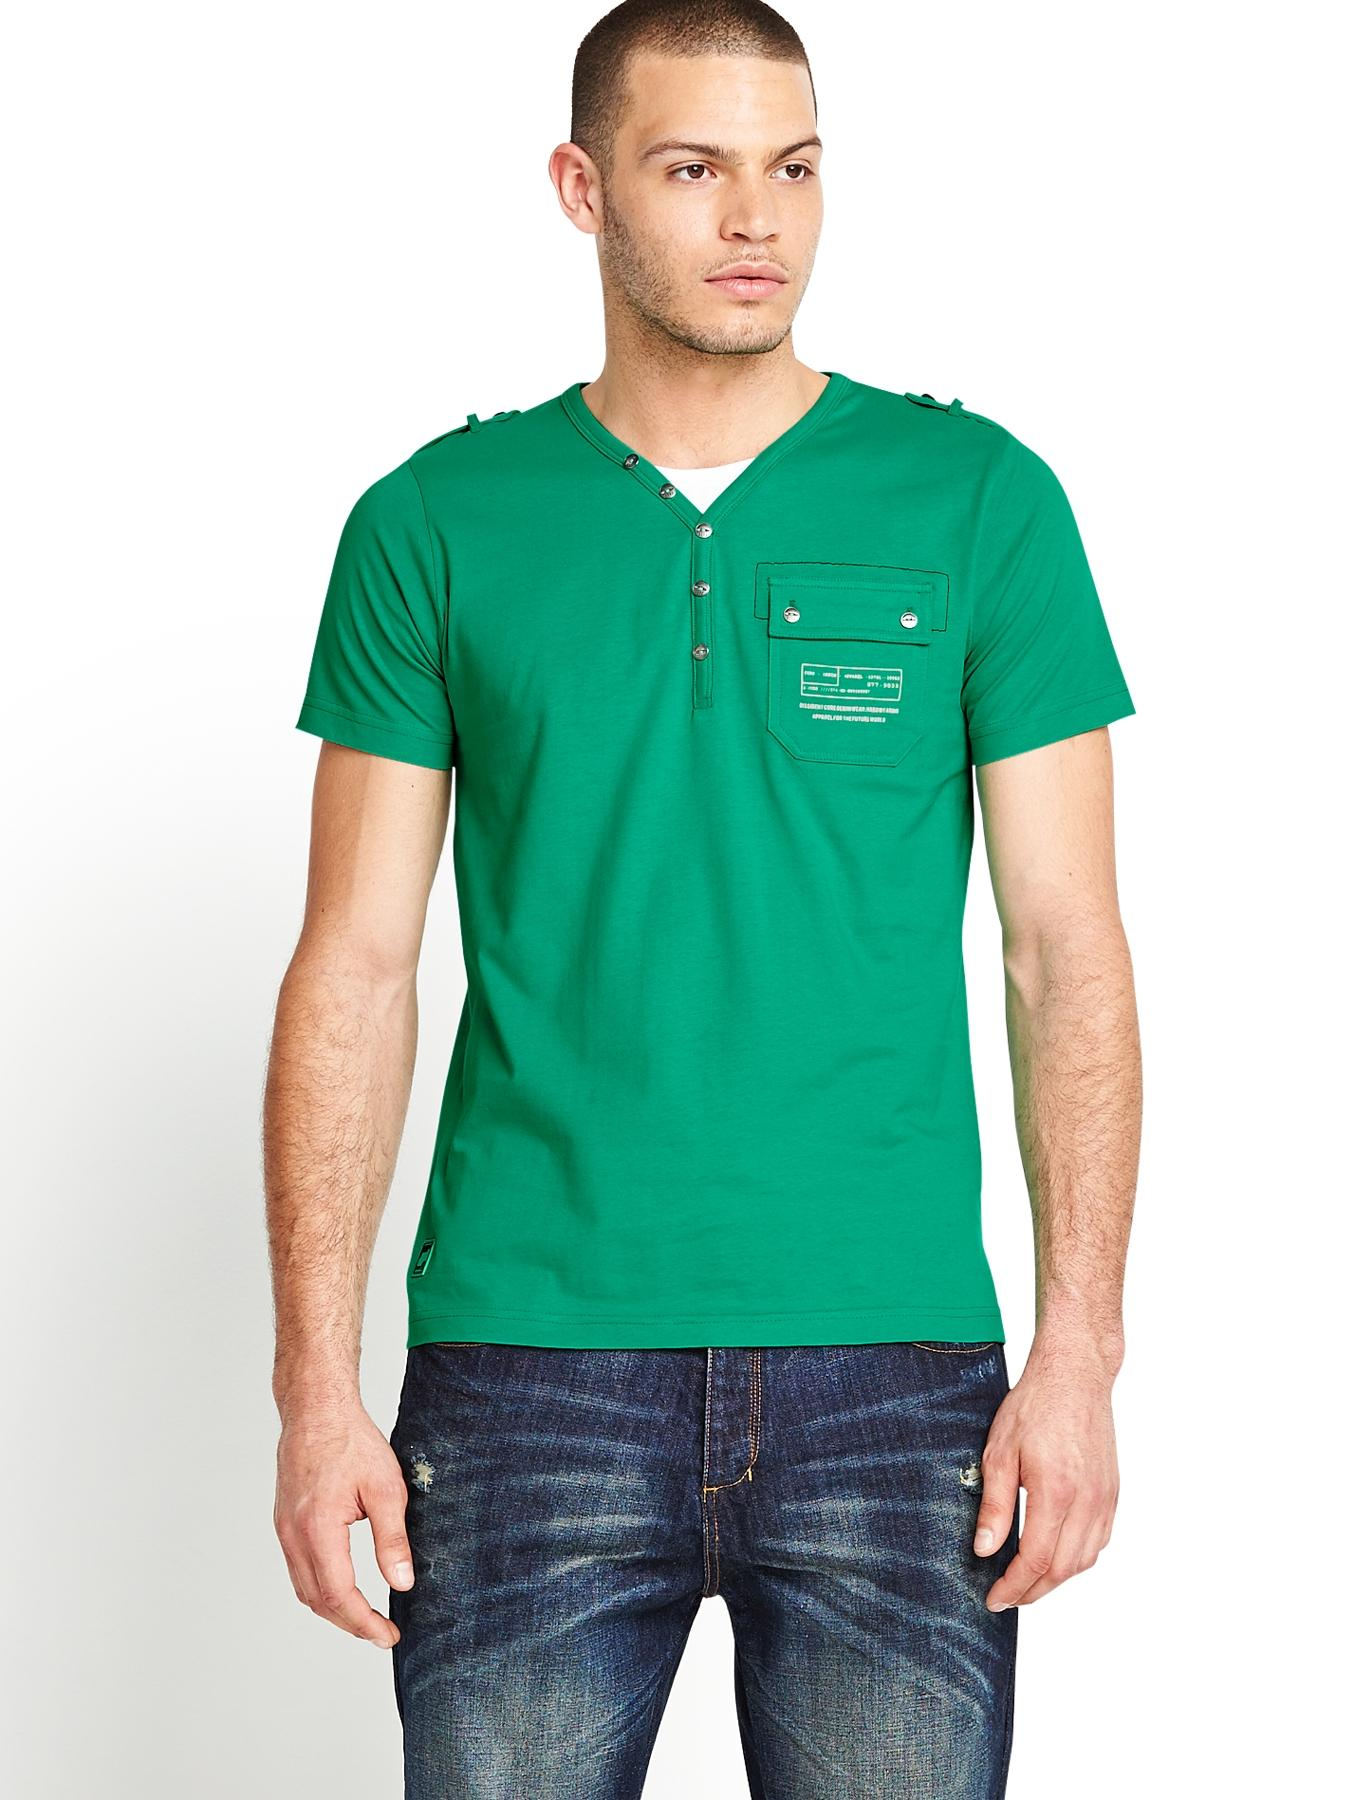 Mens Fender T-shirt - Simply Green, Green